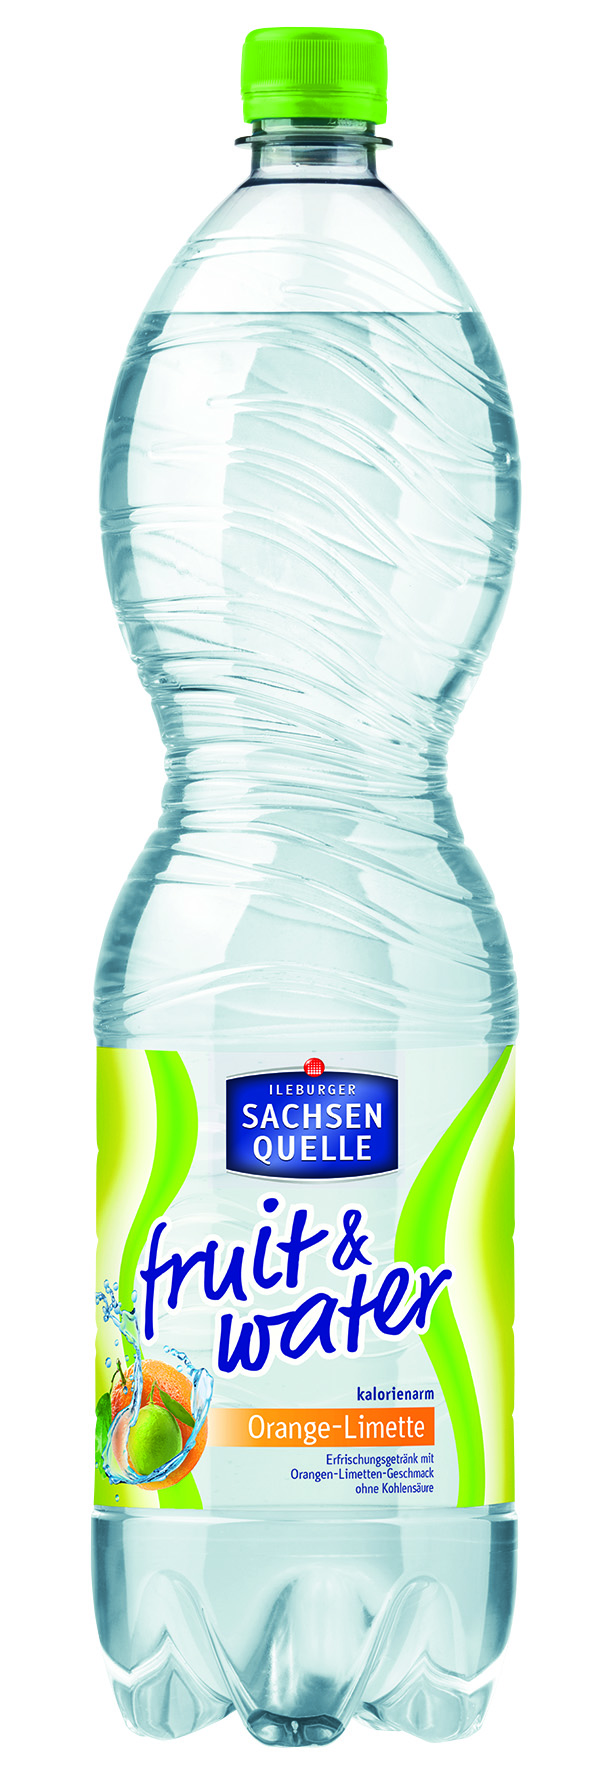 Sachsen Quelle Fruit Amp Water Orange Limette